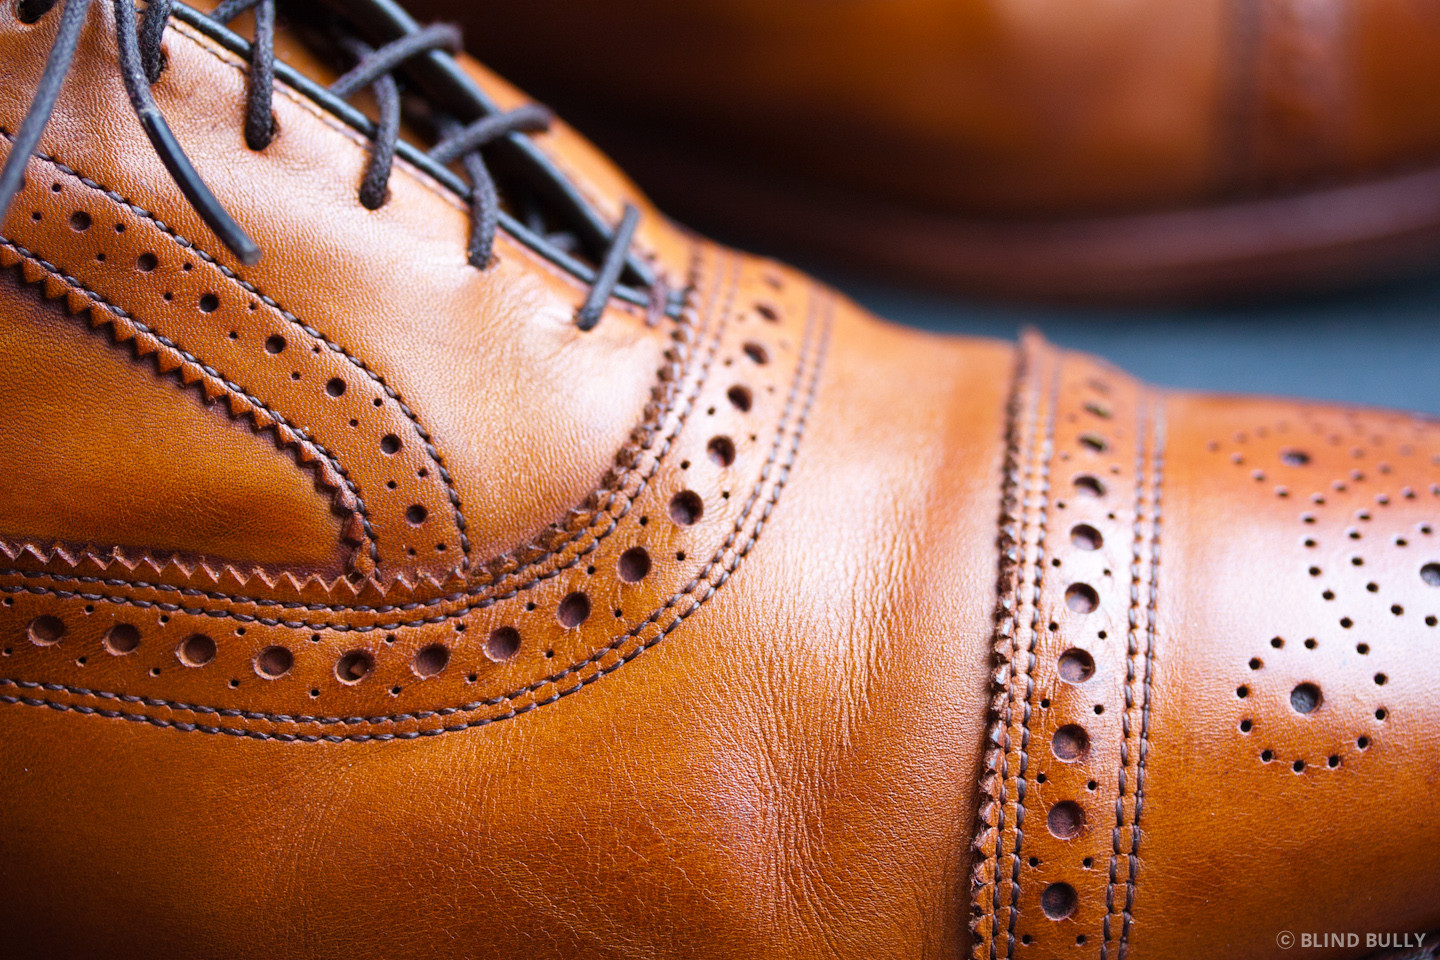 Gentle creasing from a full grain leather shoe.